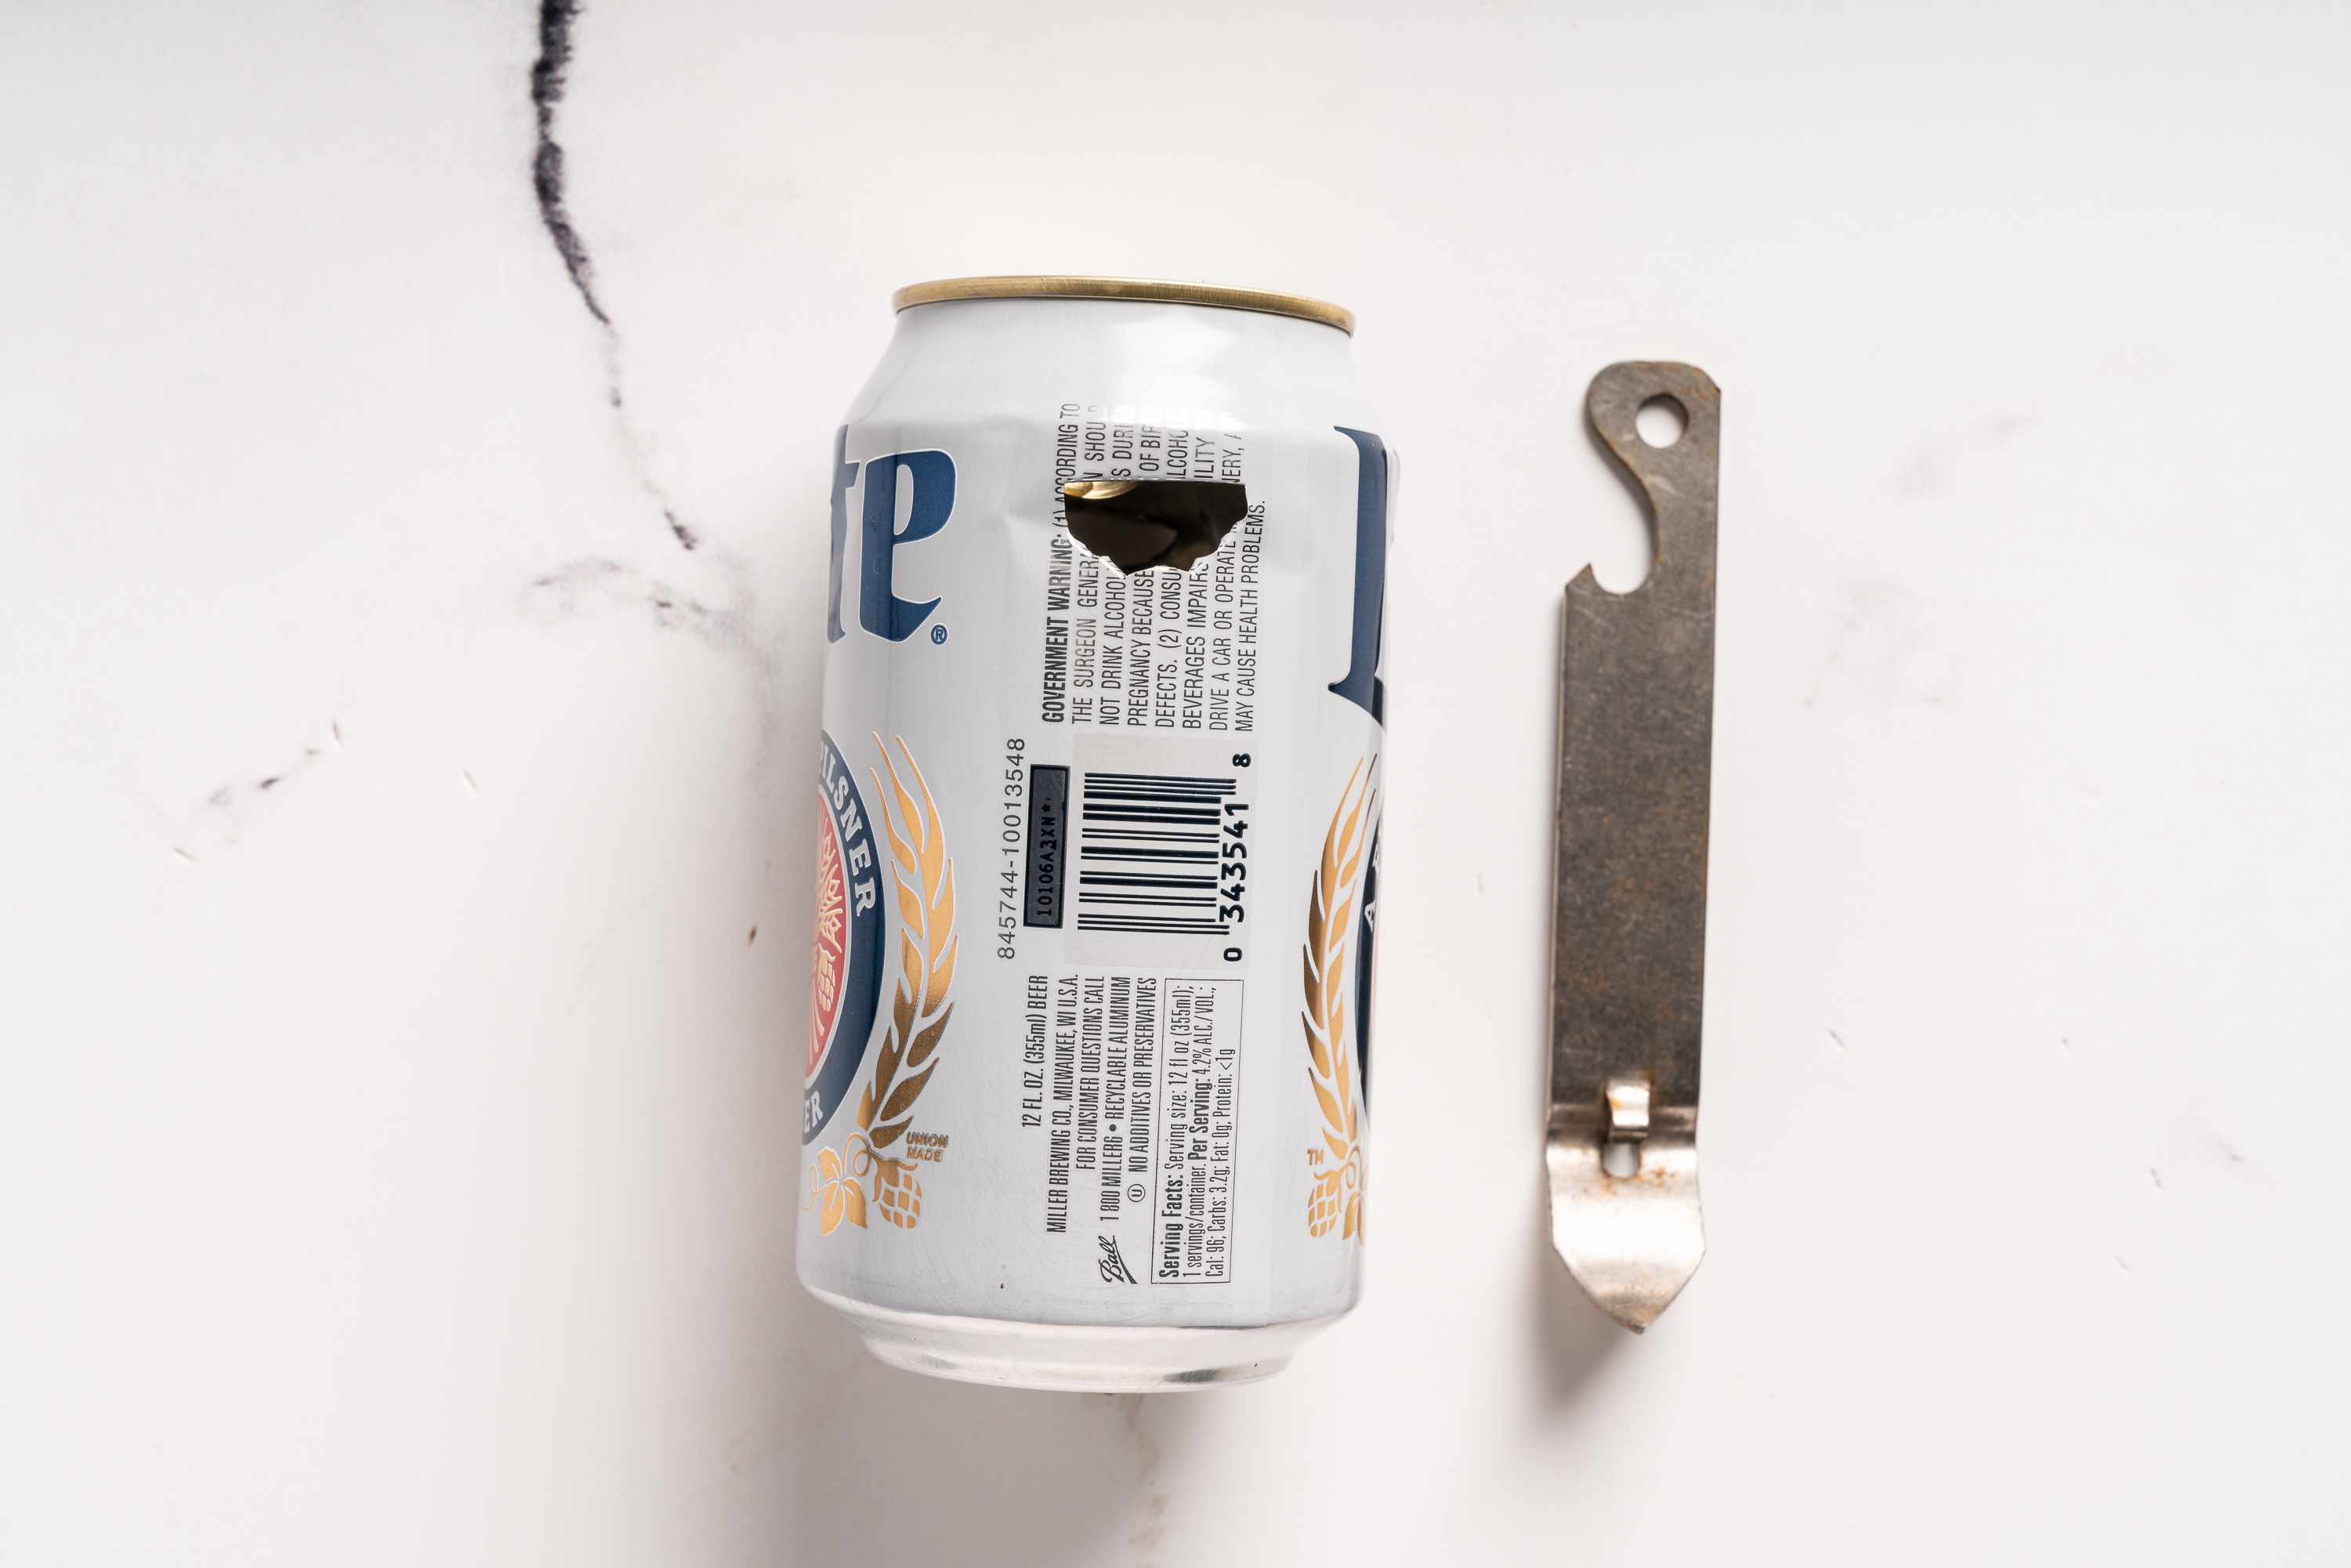 Using a pointed can opener, punch 5 holes around the outside lid of an empty beer can